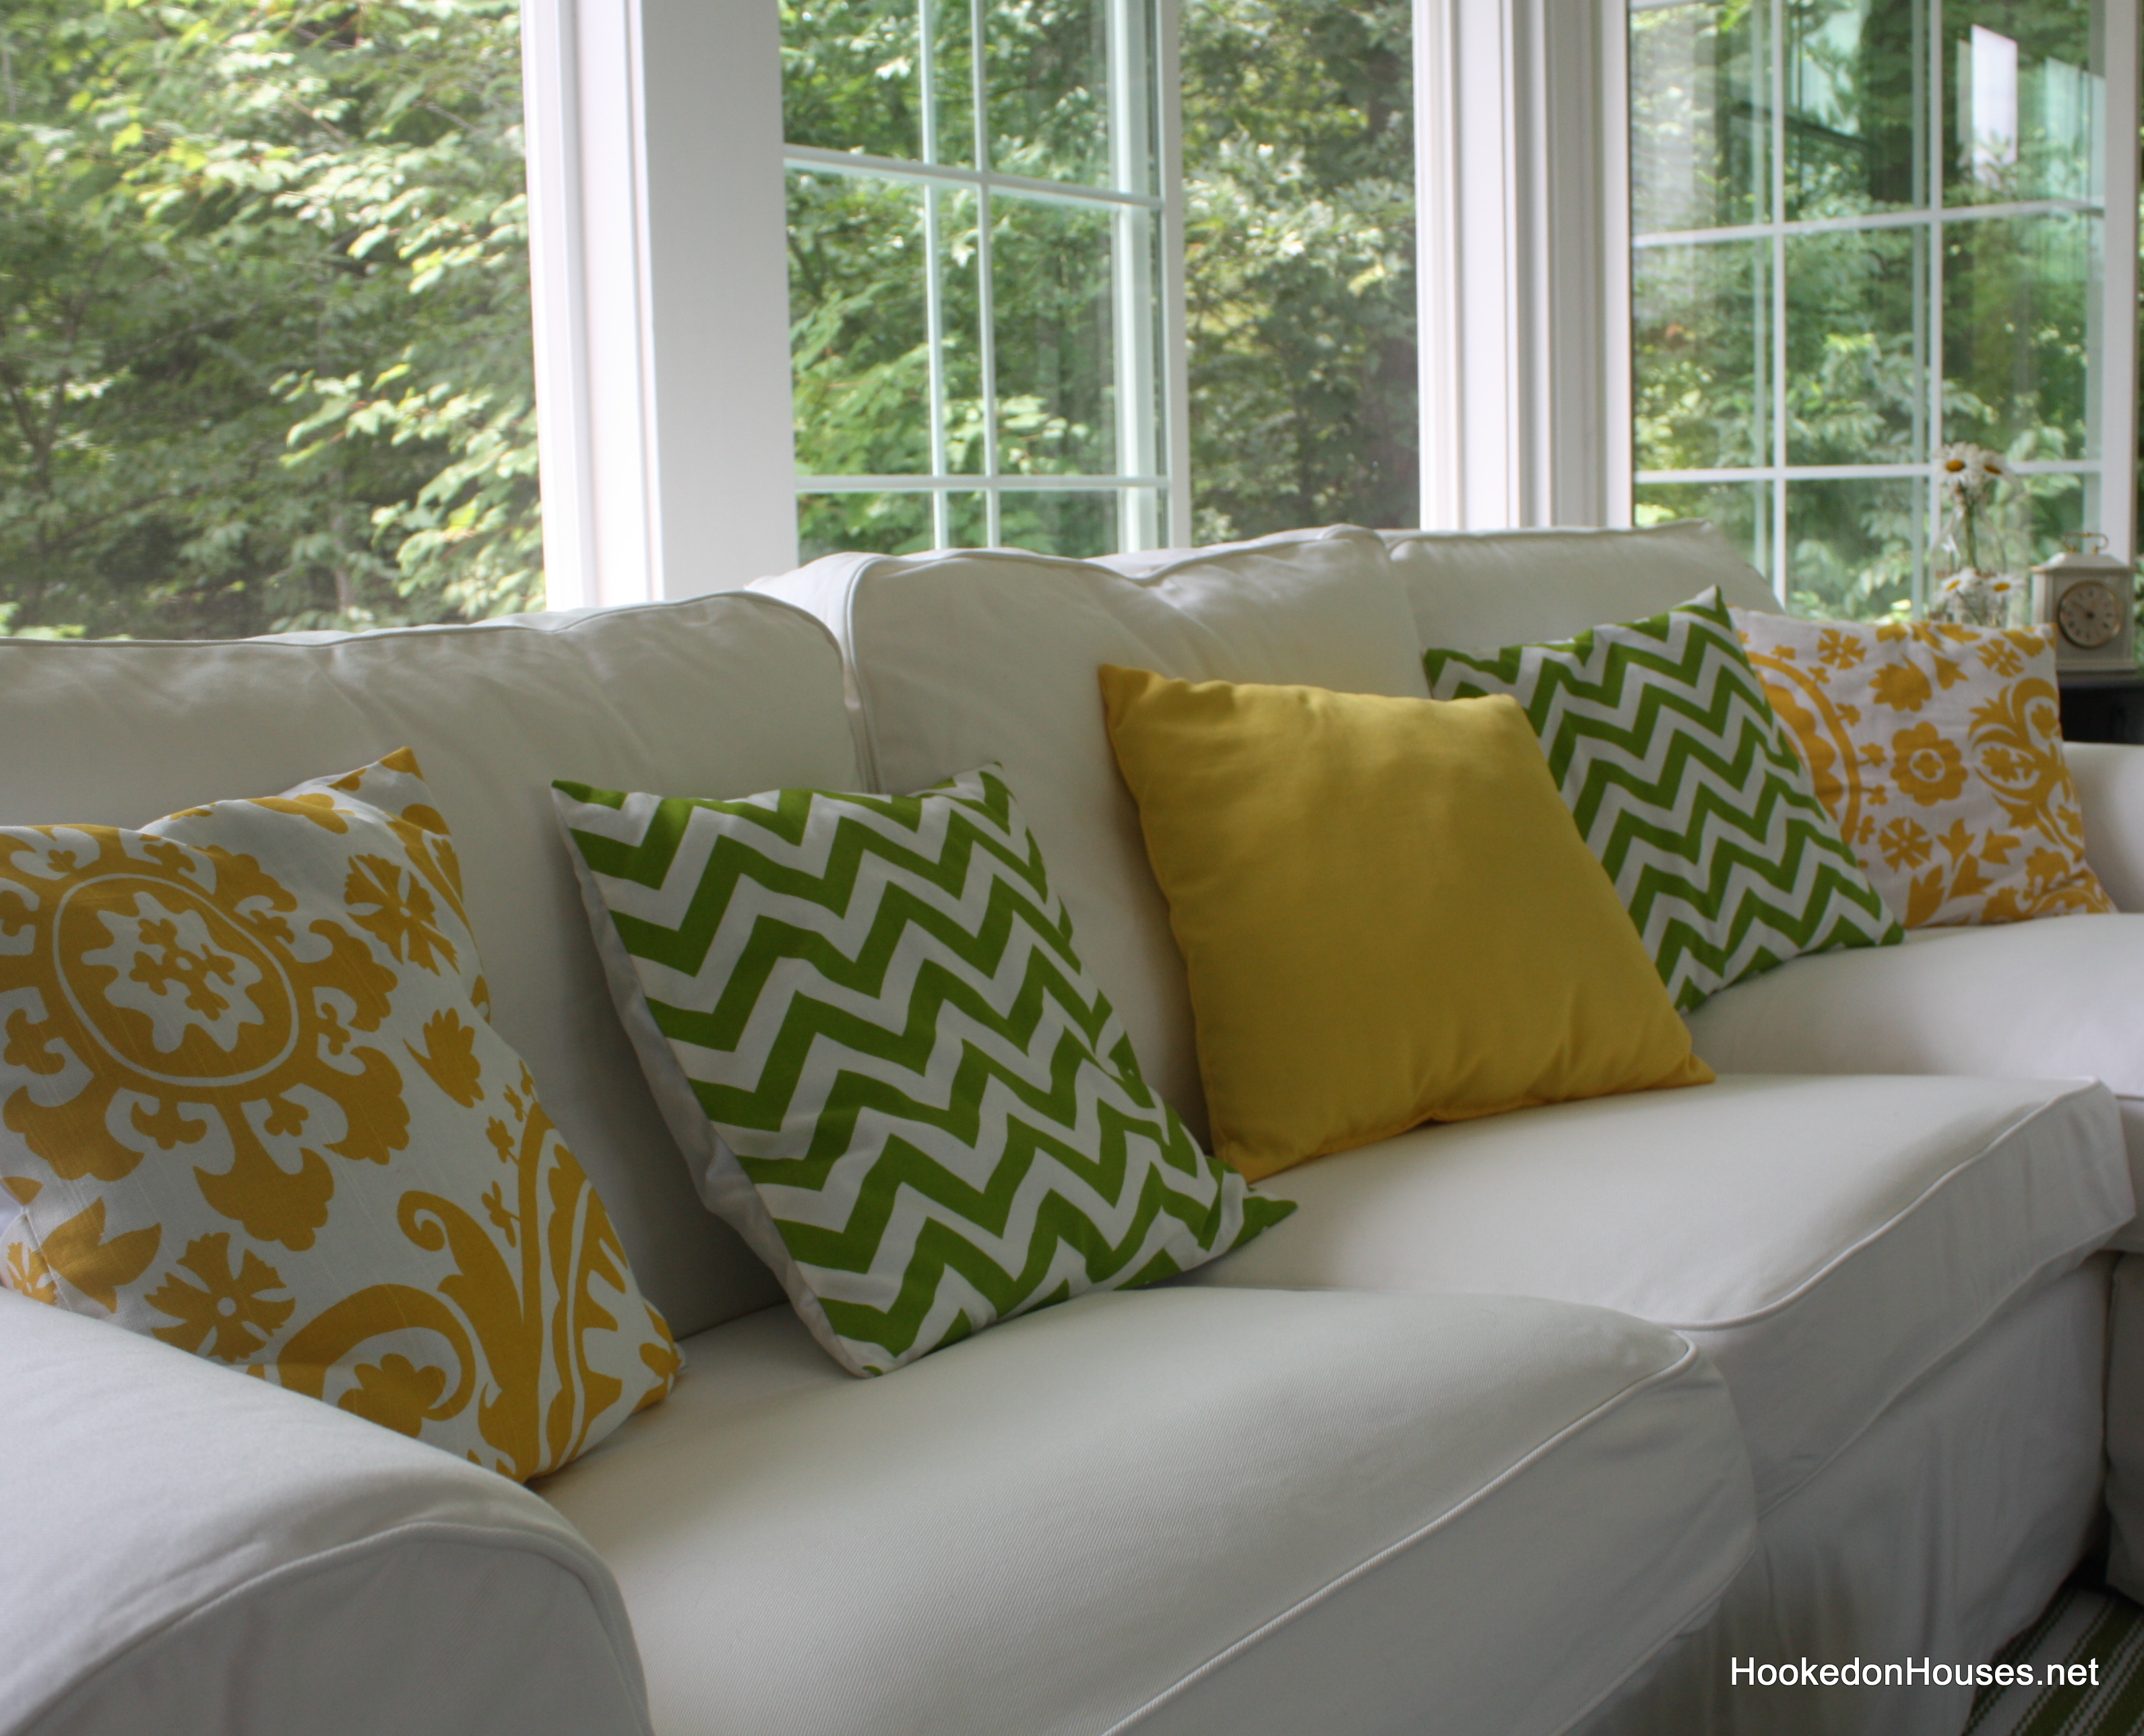 Close Up Of New Pillows On Sofa 7 11